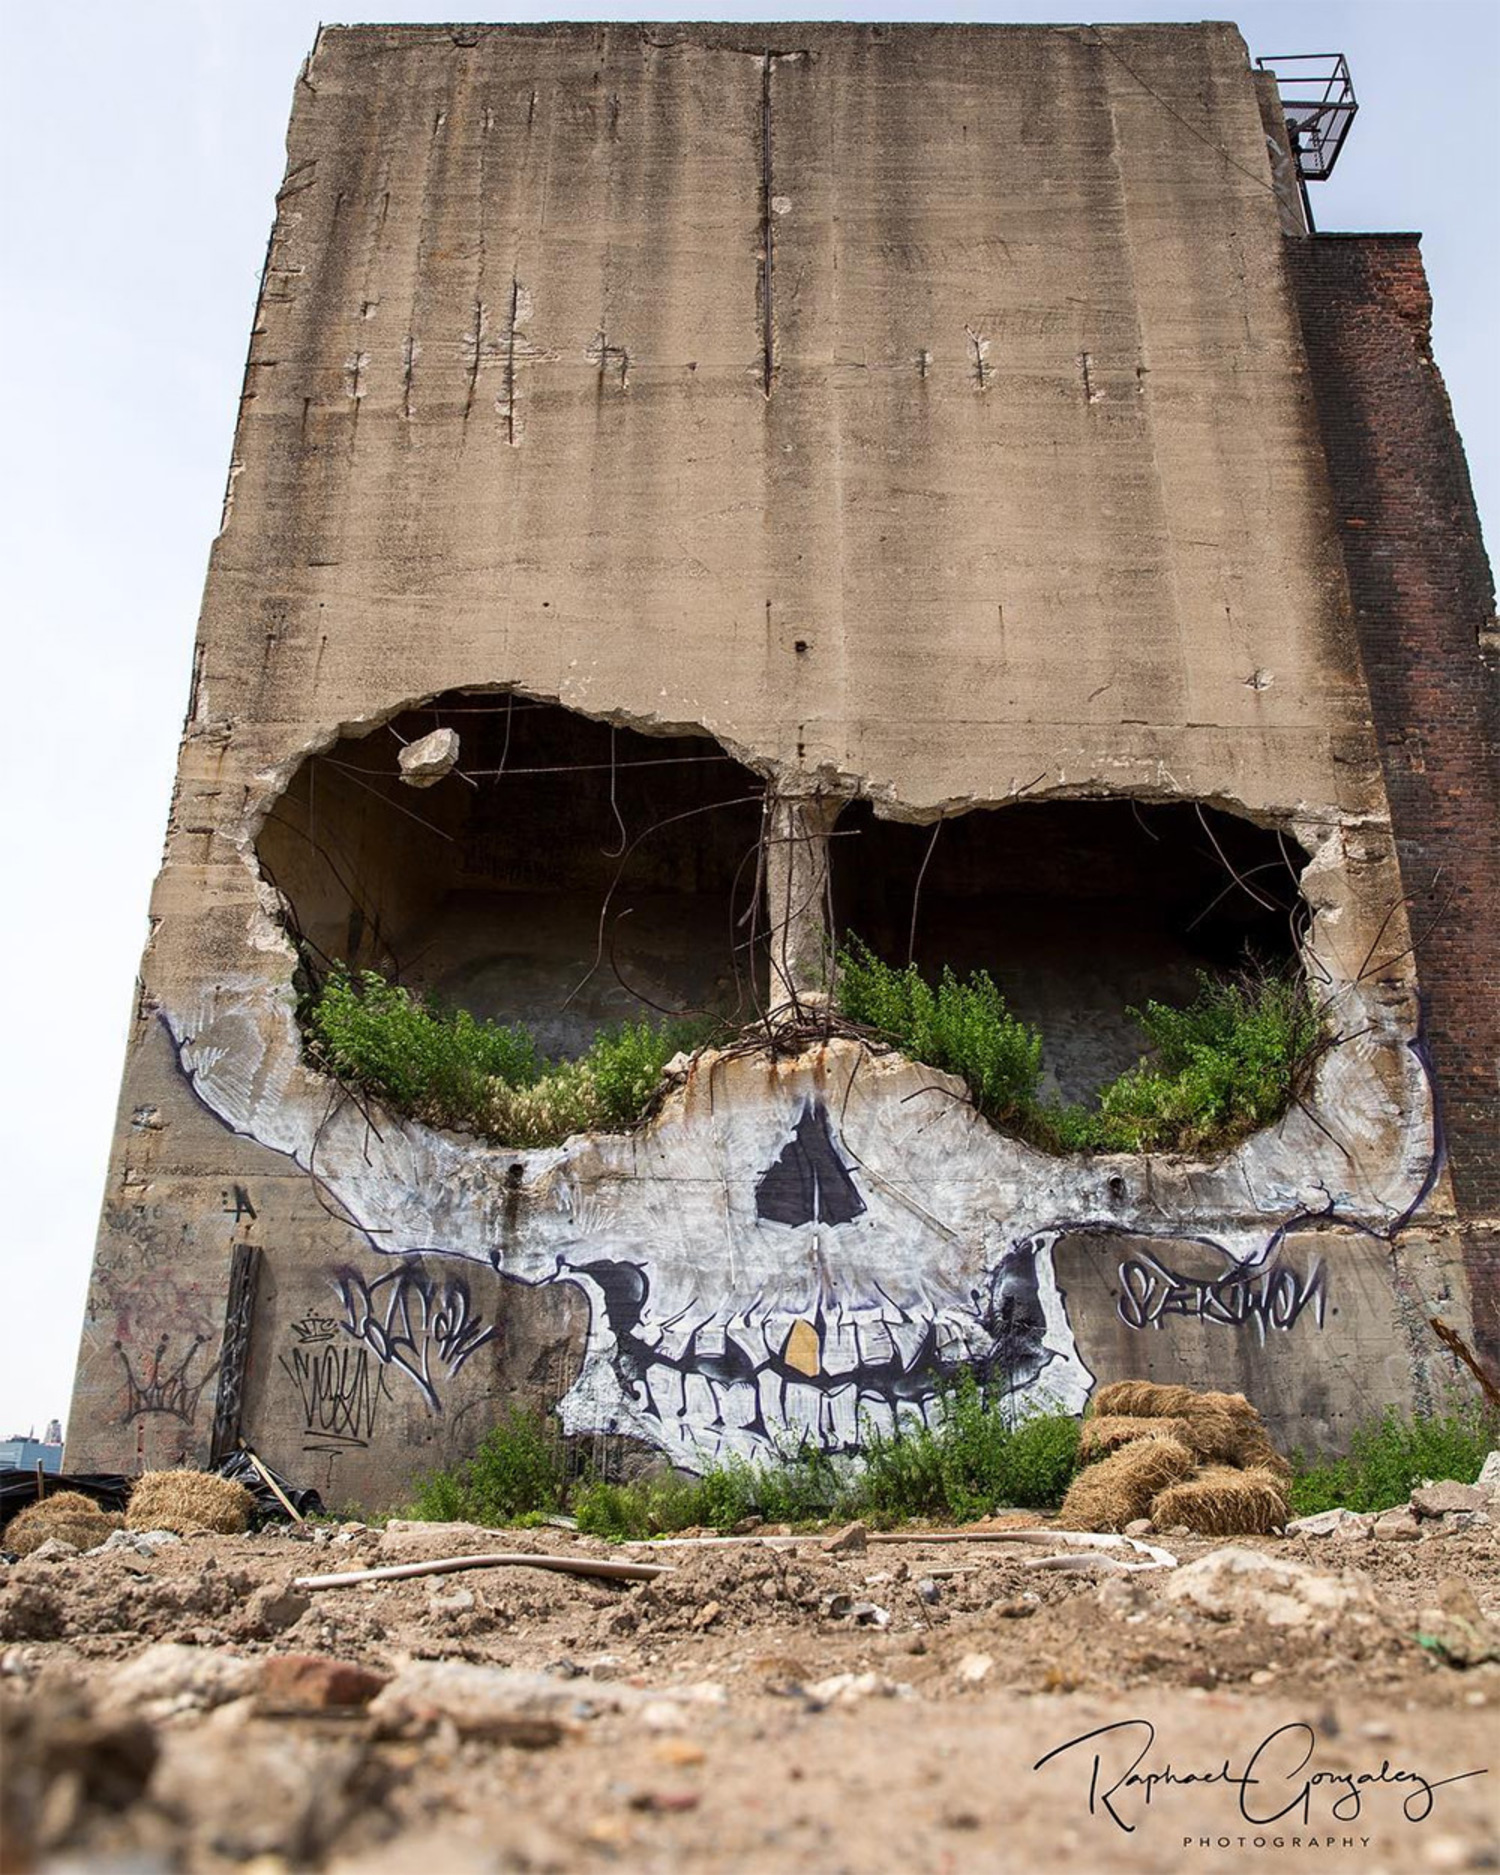 Greg Suits' Skull Mural in Greenpoint